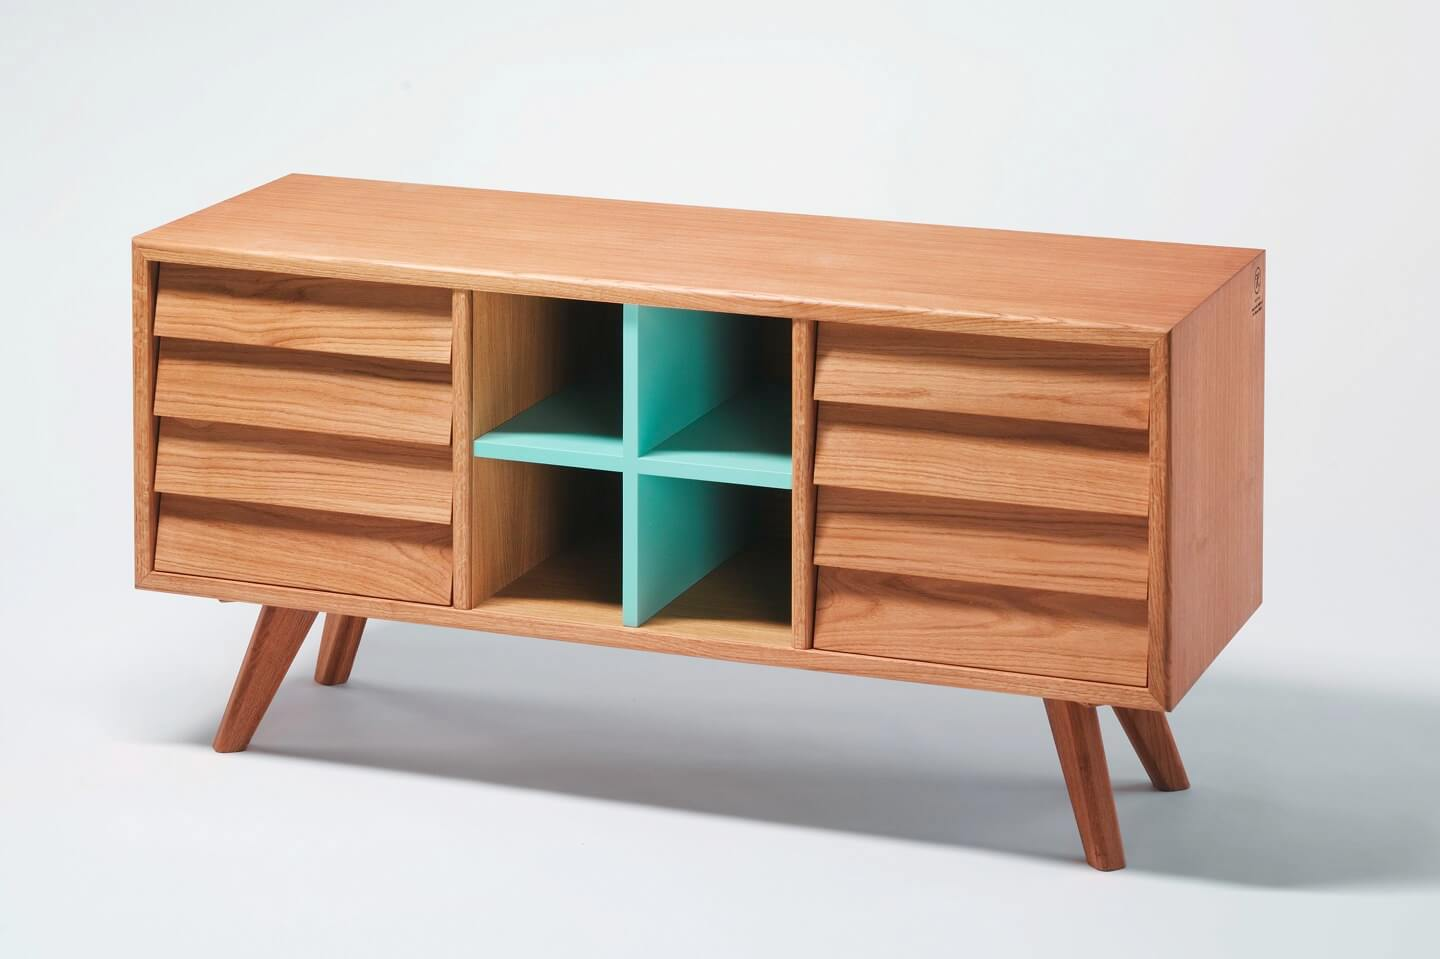 furniture-remix-sideboard-the-hansen-family-2